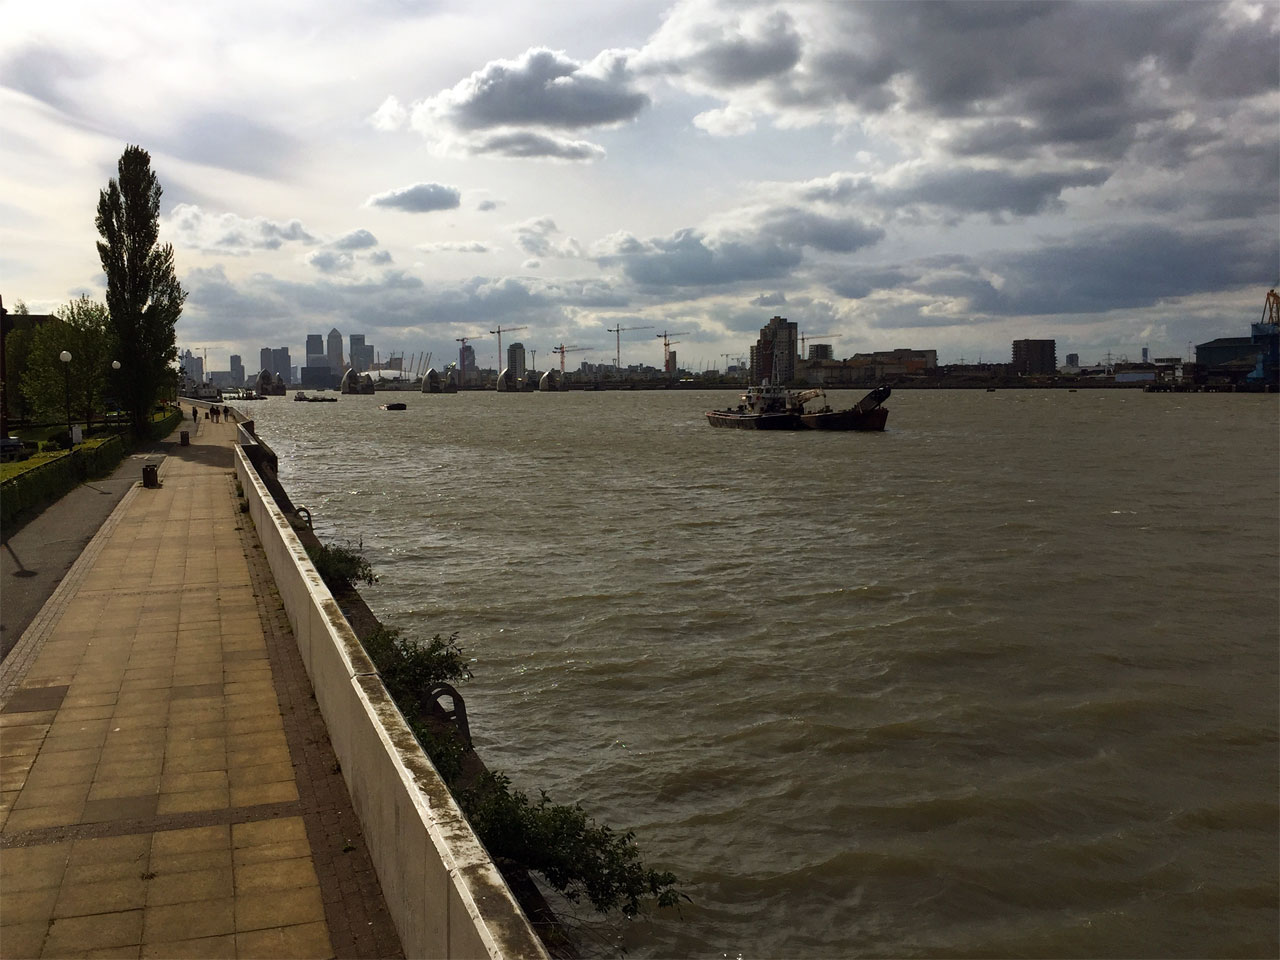 The Thames Barrier and Canary Wharf, London